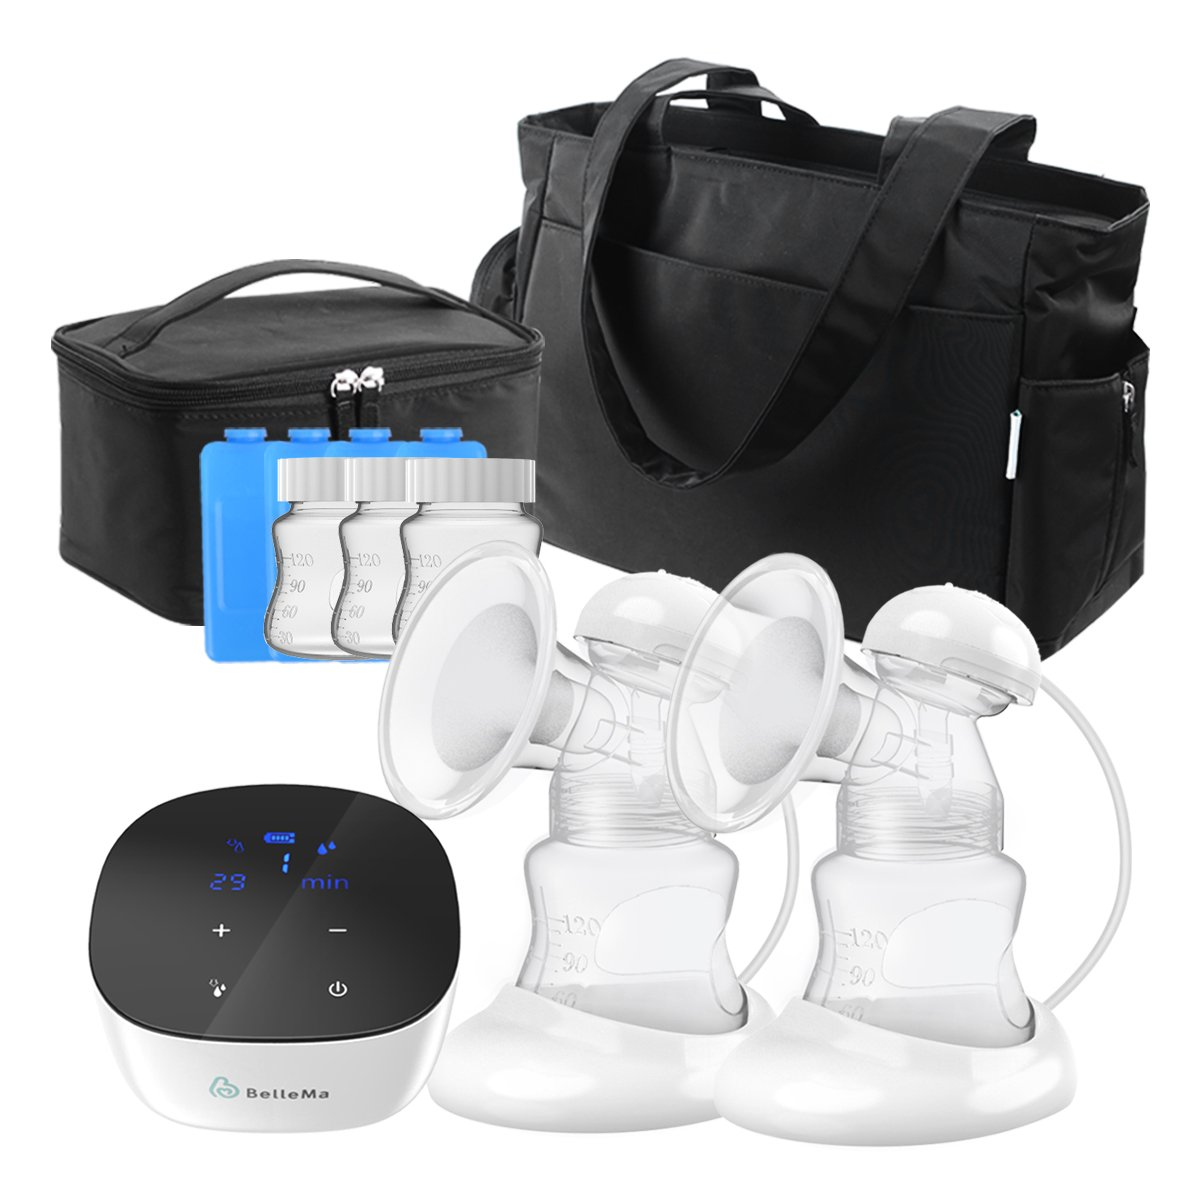 BelleMa E5 Hospital Grade Breast Pump, 2 Modes & 9 Suction Levels Double Breast Pump, LCD Touch Control, Memory Function, Li-Battery Silent Breast Pump for Travel/Office/Home Use (E5 Bundle)